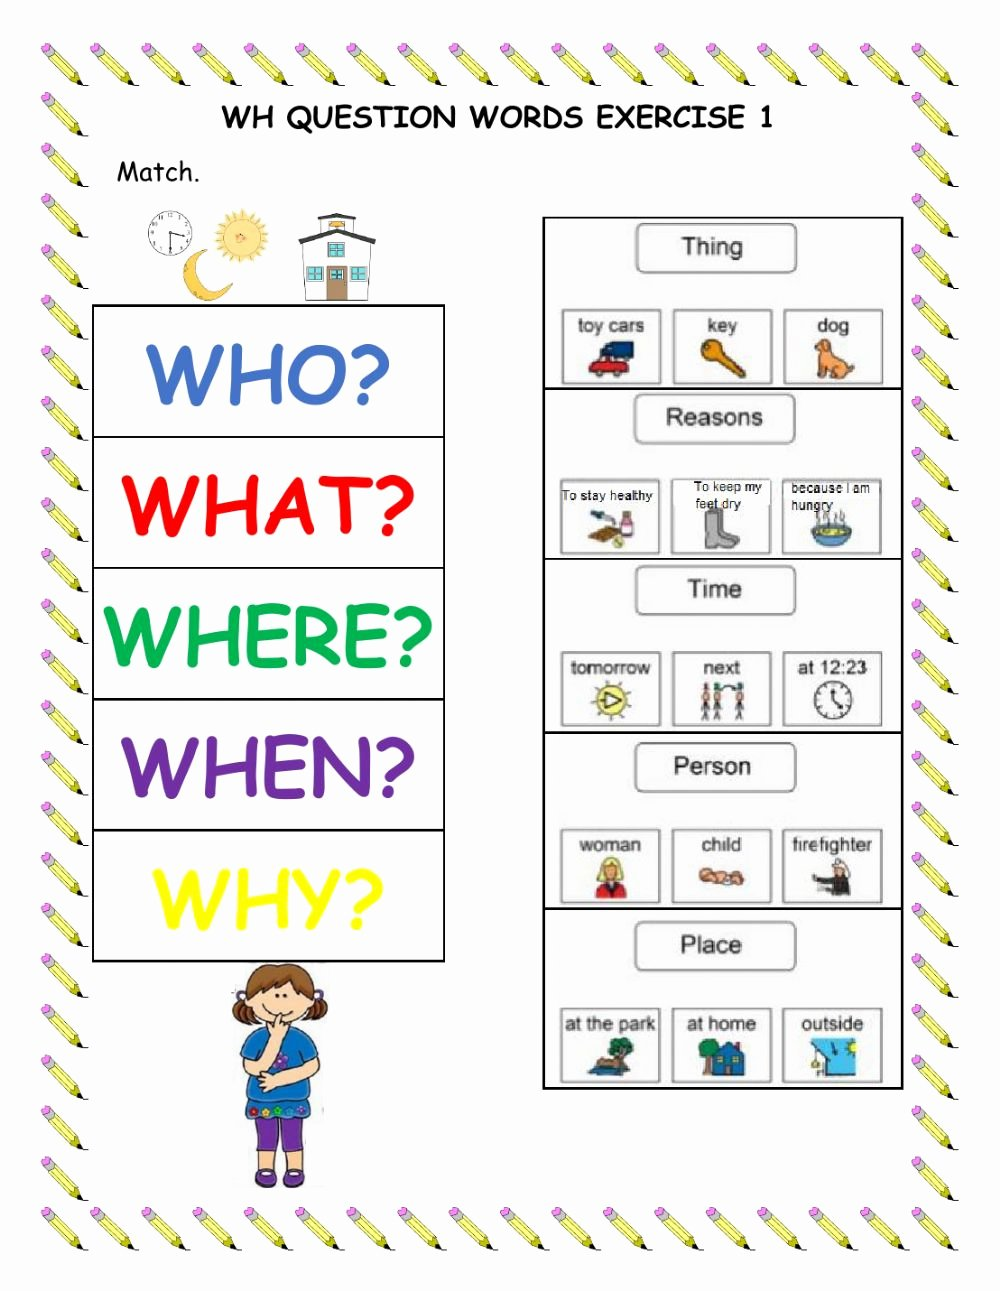 Wh Questions Worksheets for Preschoolers Free Wh Question Words Exercise 1 Interactive Worksheet